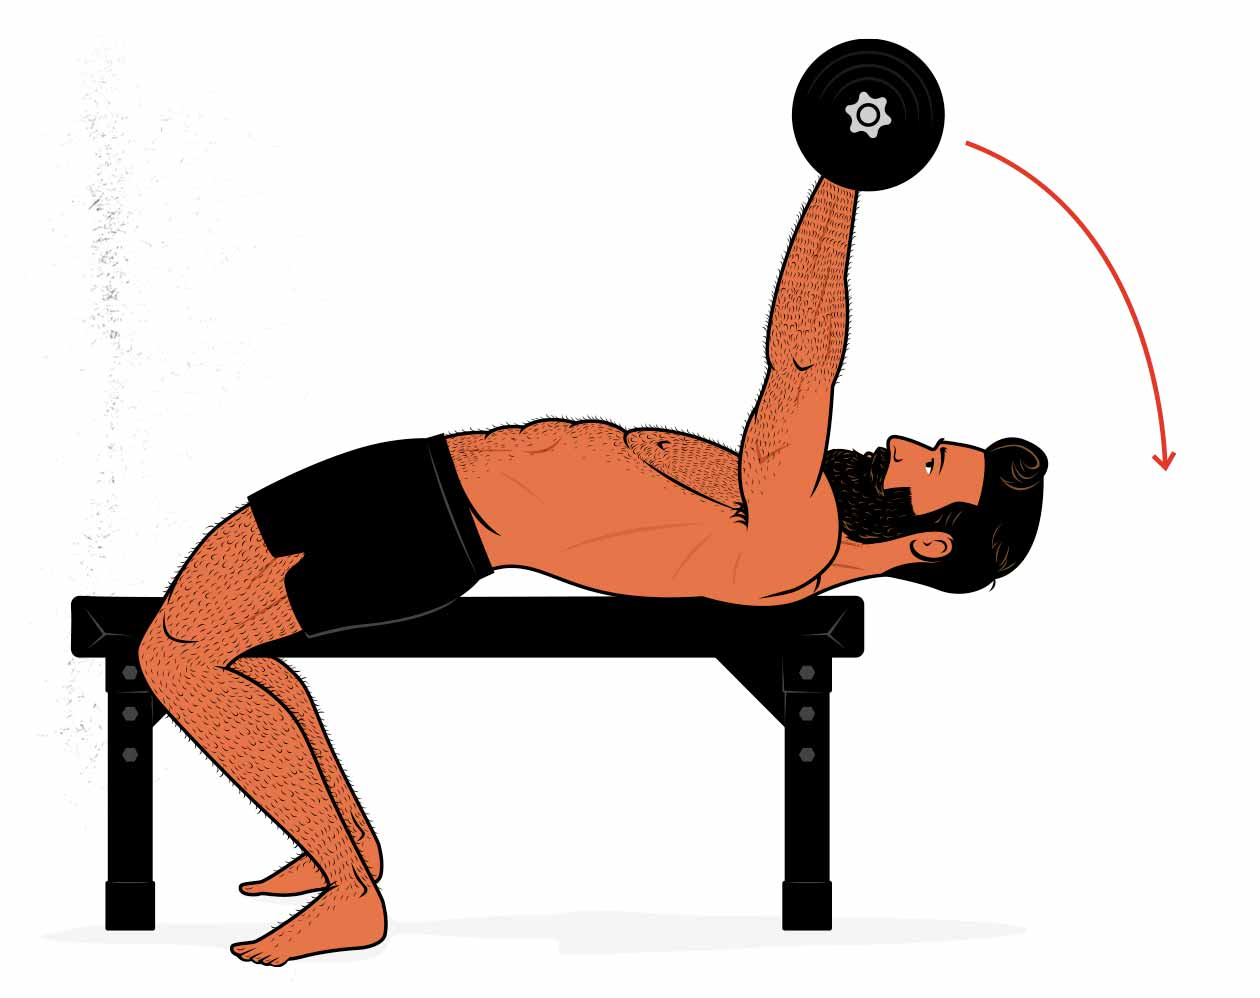 Illustration showing how to do the barbell pullover exercise.